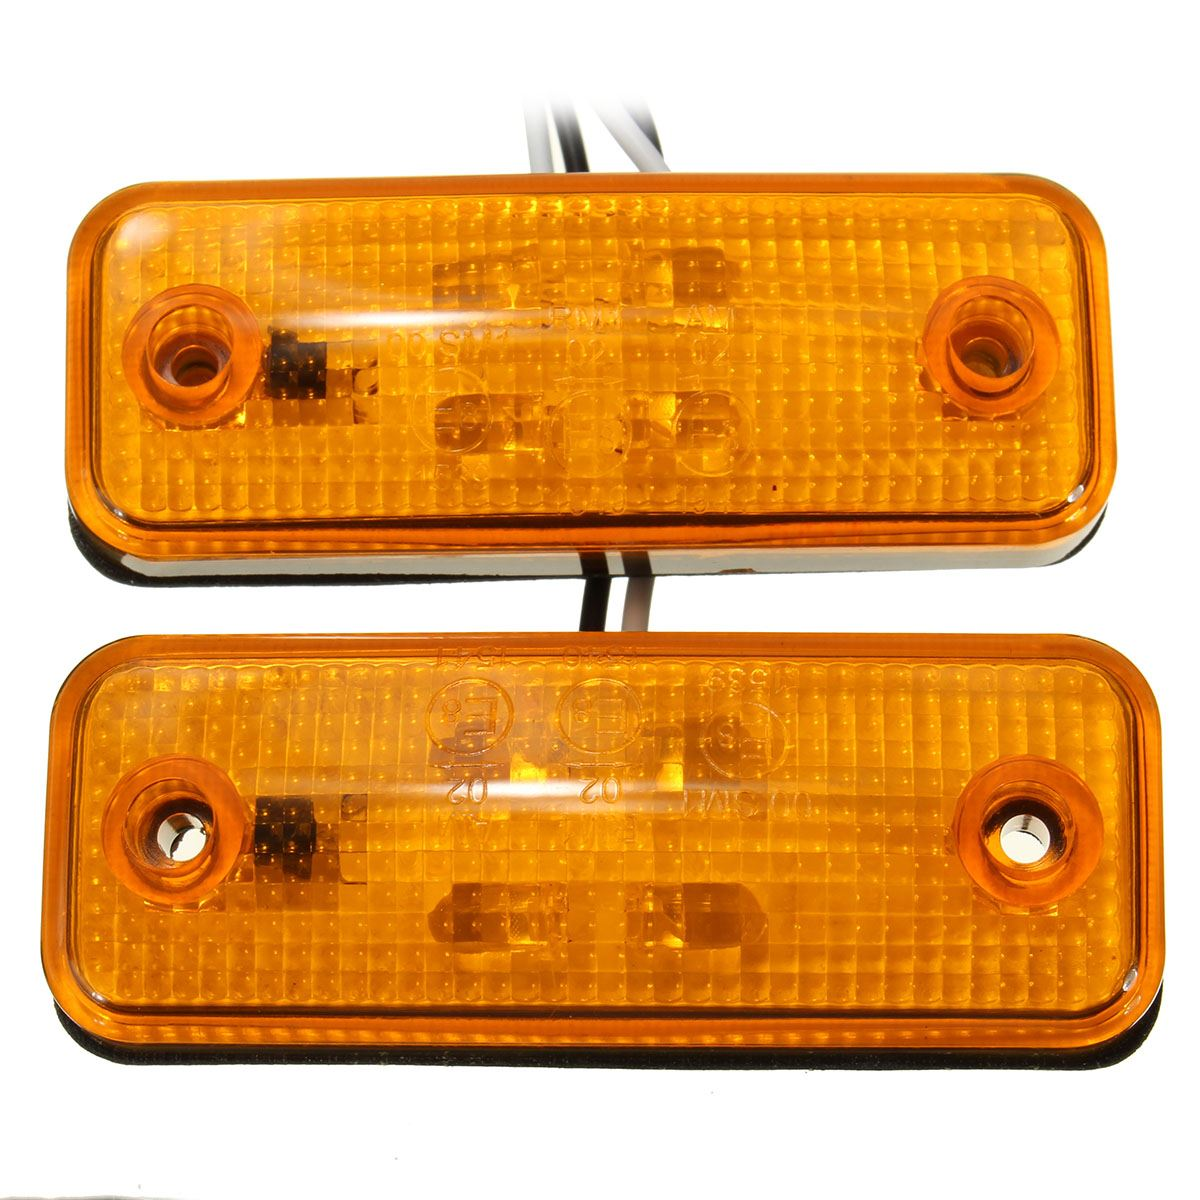 2pcs 4 LED Side Marker Light Indicator Lamp Bus Truck Trailer Lorry Caravan 10~30V E8 2x 12 24v led side outline stalk marker light lamp e8 e mark trailer truck lorry